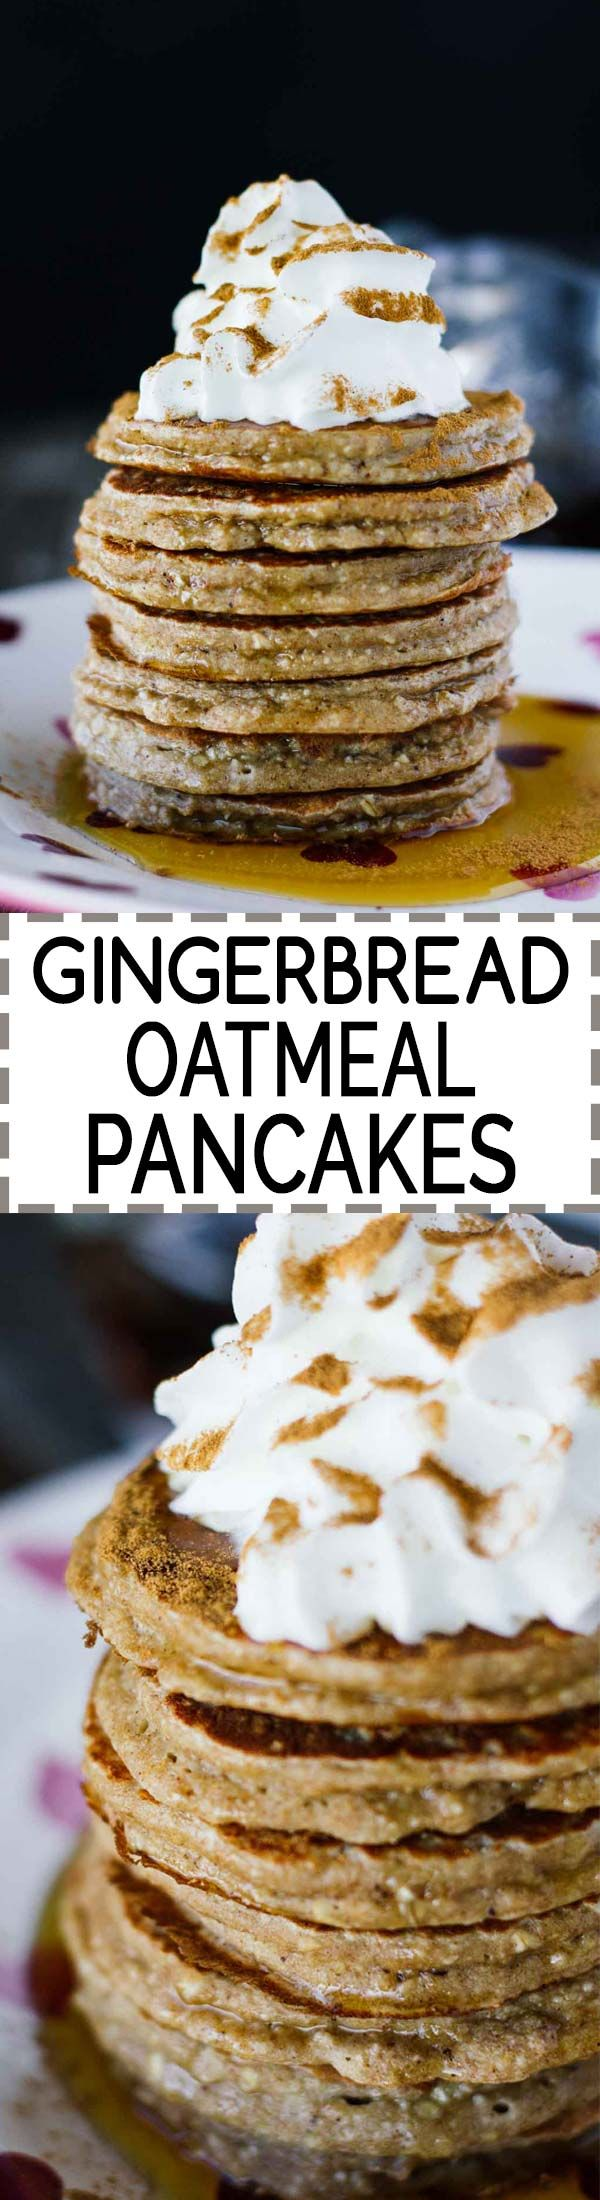 Gingerbread Oatmeal Pancakes! Healthy, gluten-free, vegetarian, refined sugar free, easy to make, and perfect for the holidays! :)